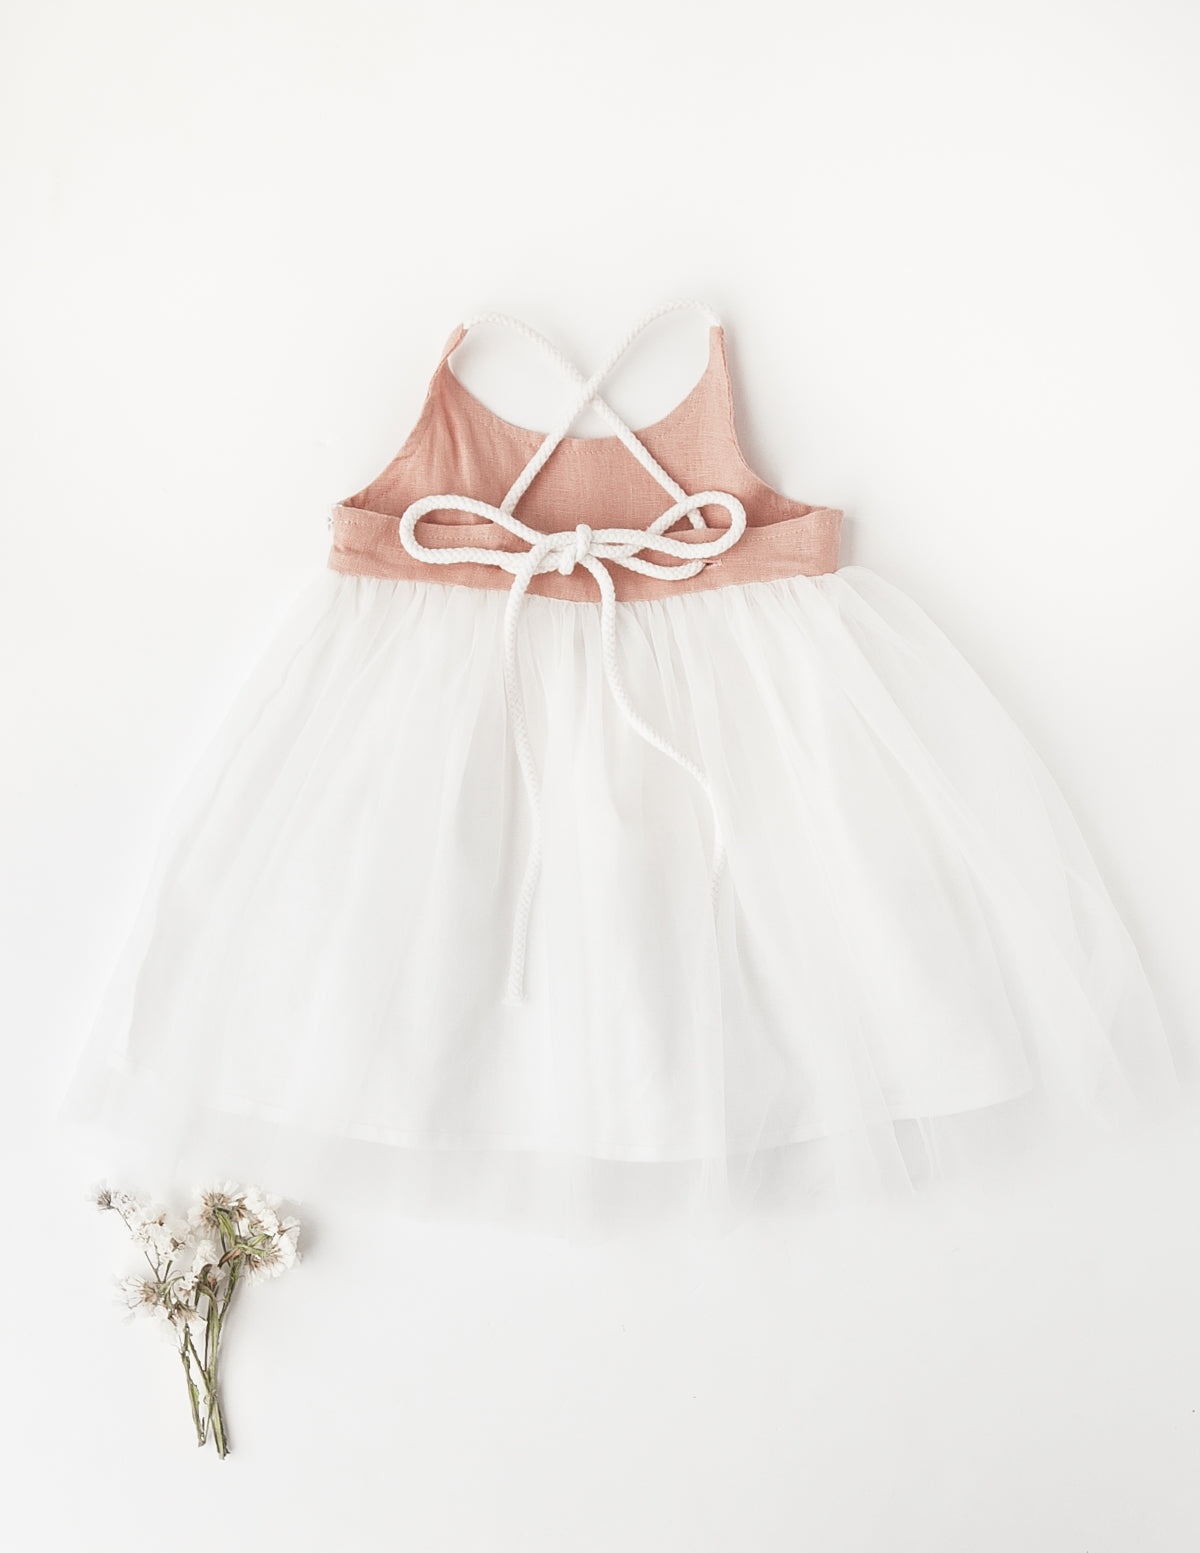 Willa Reversible Linen Tutu Dress In Petal - Garden Edition